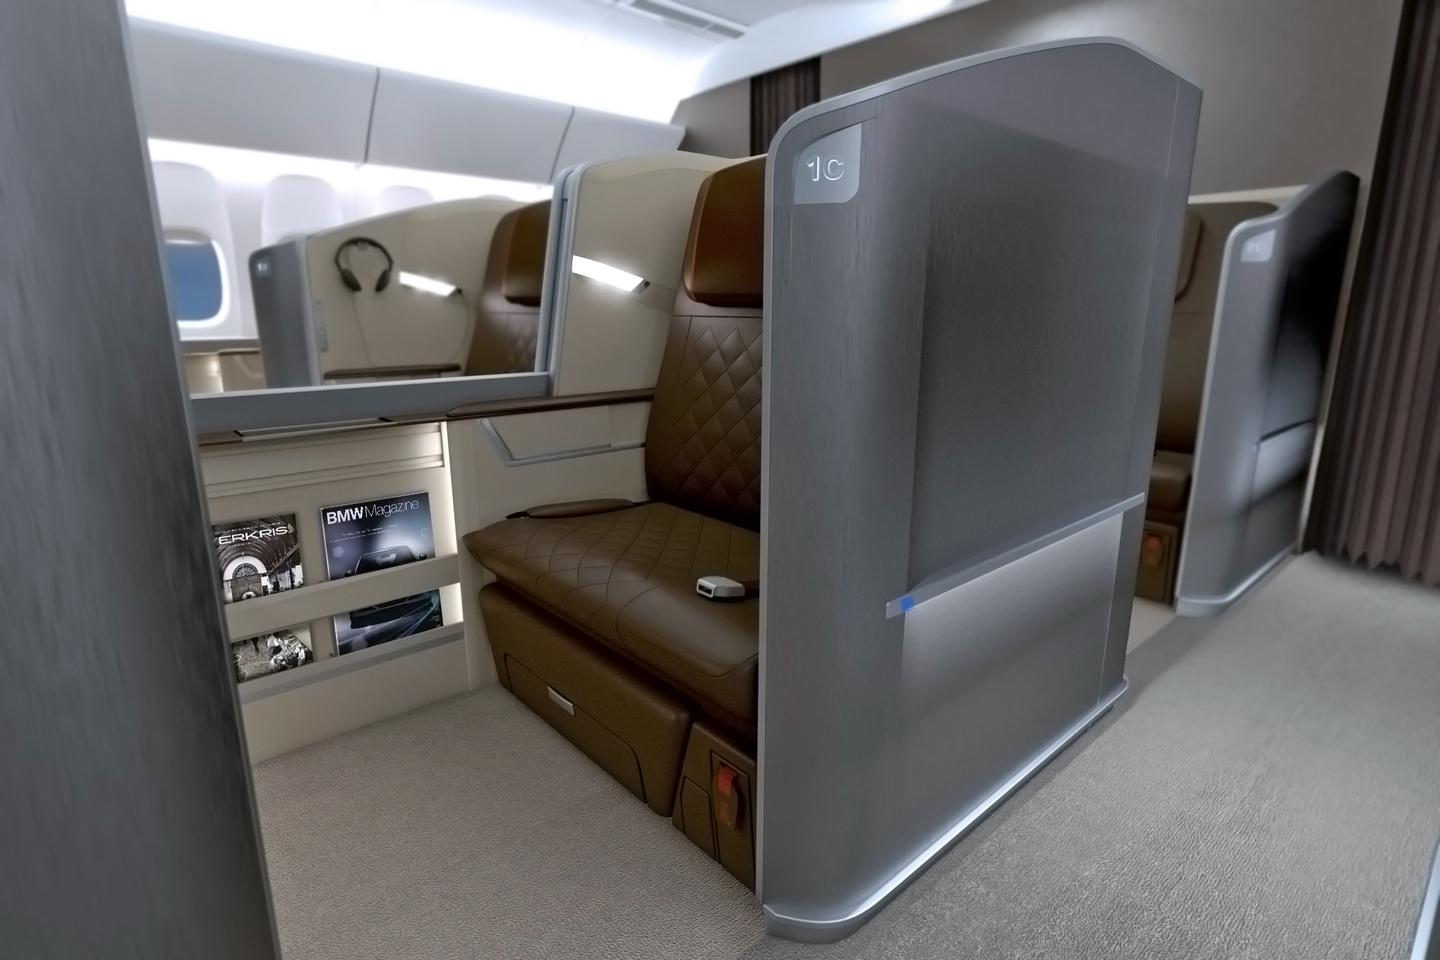 The next-generation First Class seats will be available on select flights between London and Singapore